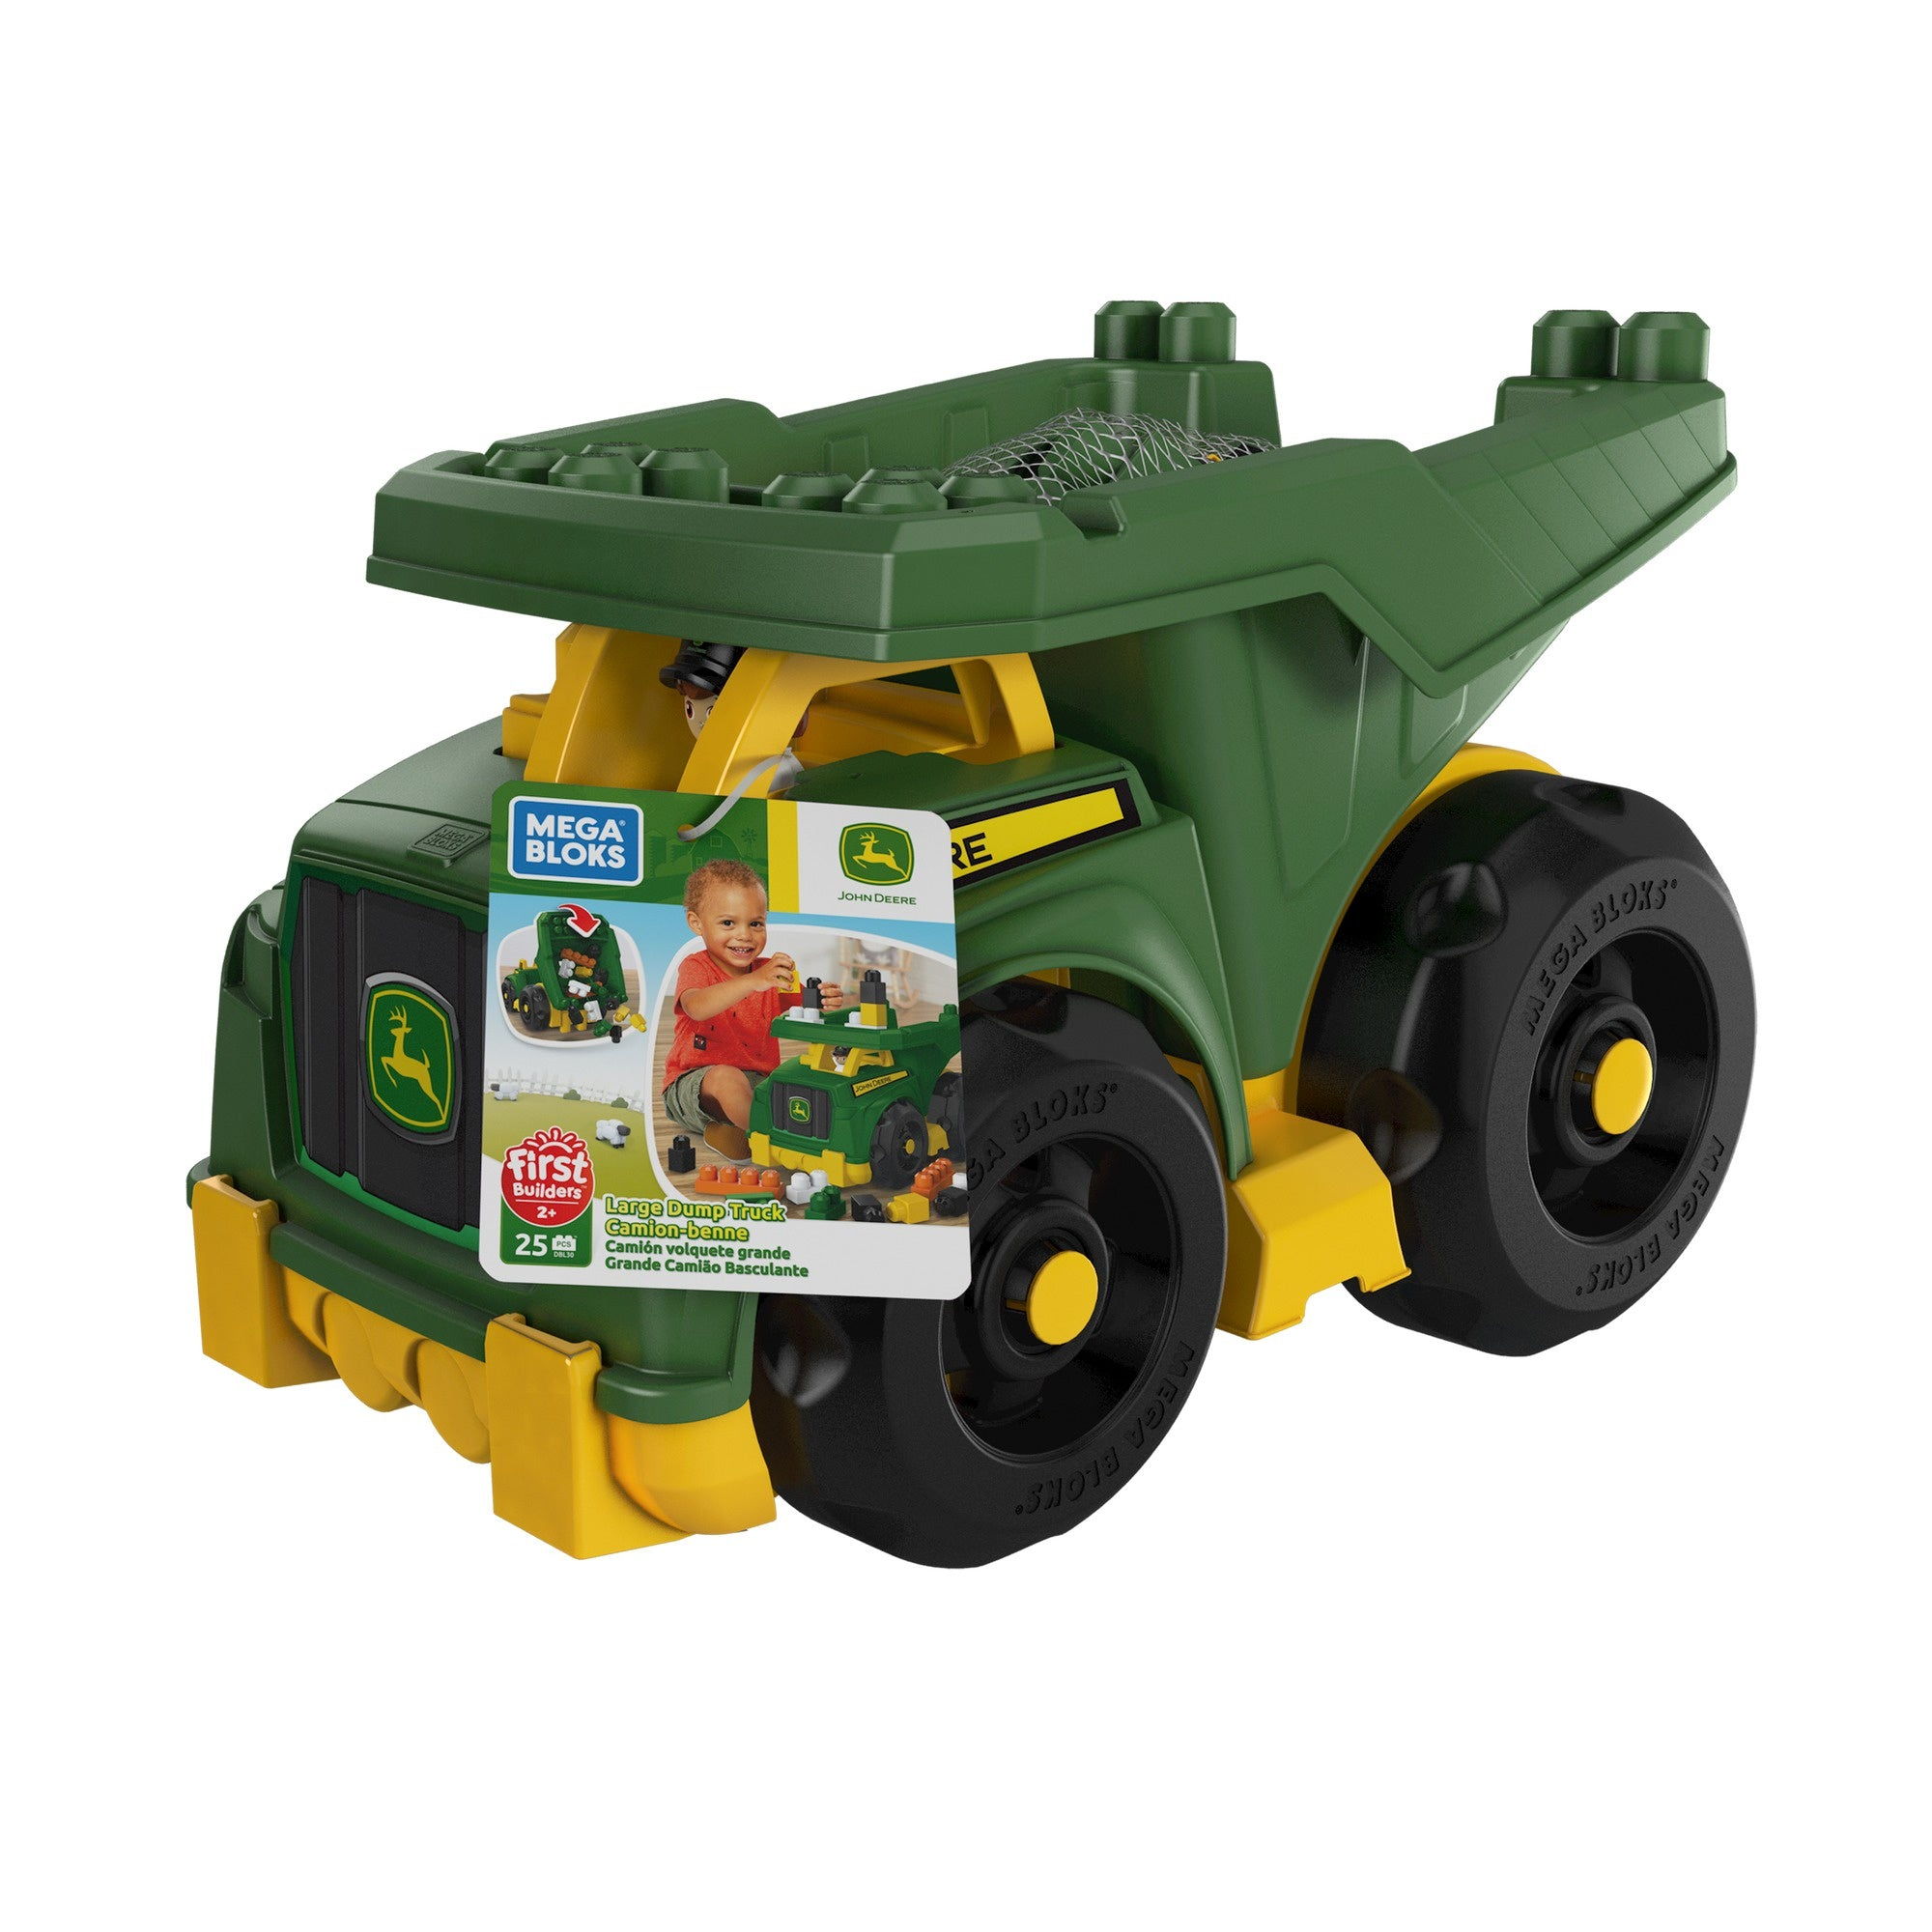 Mega Bloks John Deere Dump Truck With Bricks